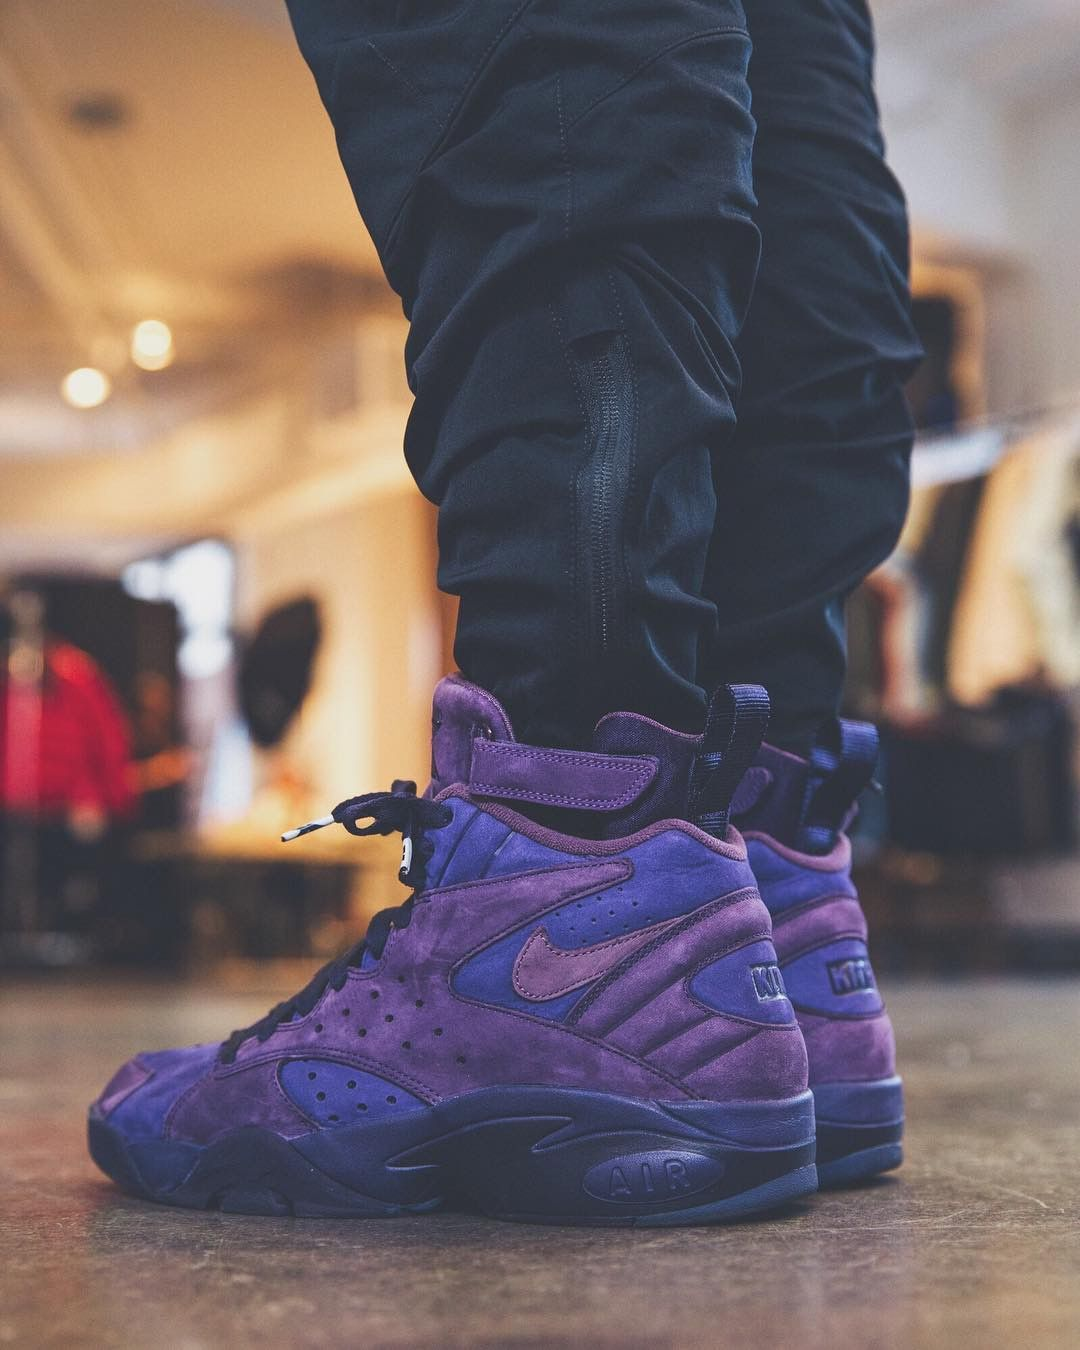 buy online bda5d 36e44 Preview  KITH x Nike Air Maestro II - EU Kicks  Sneaker Magazine